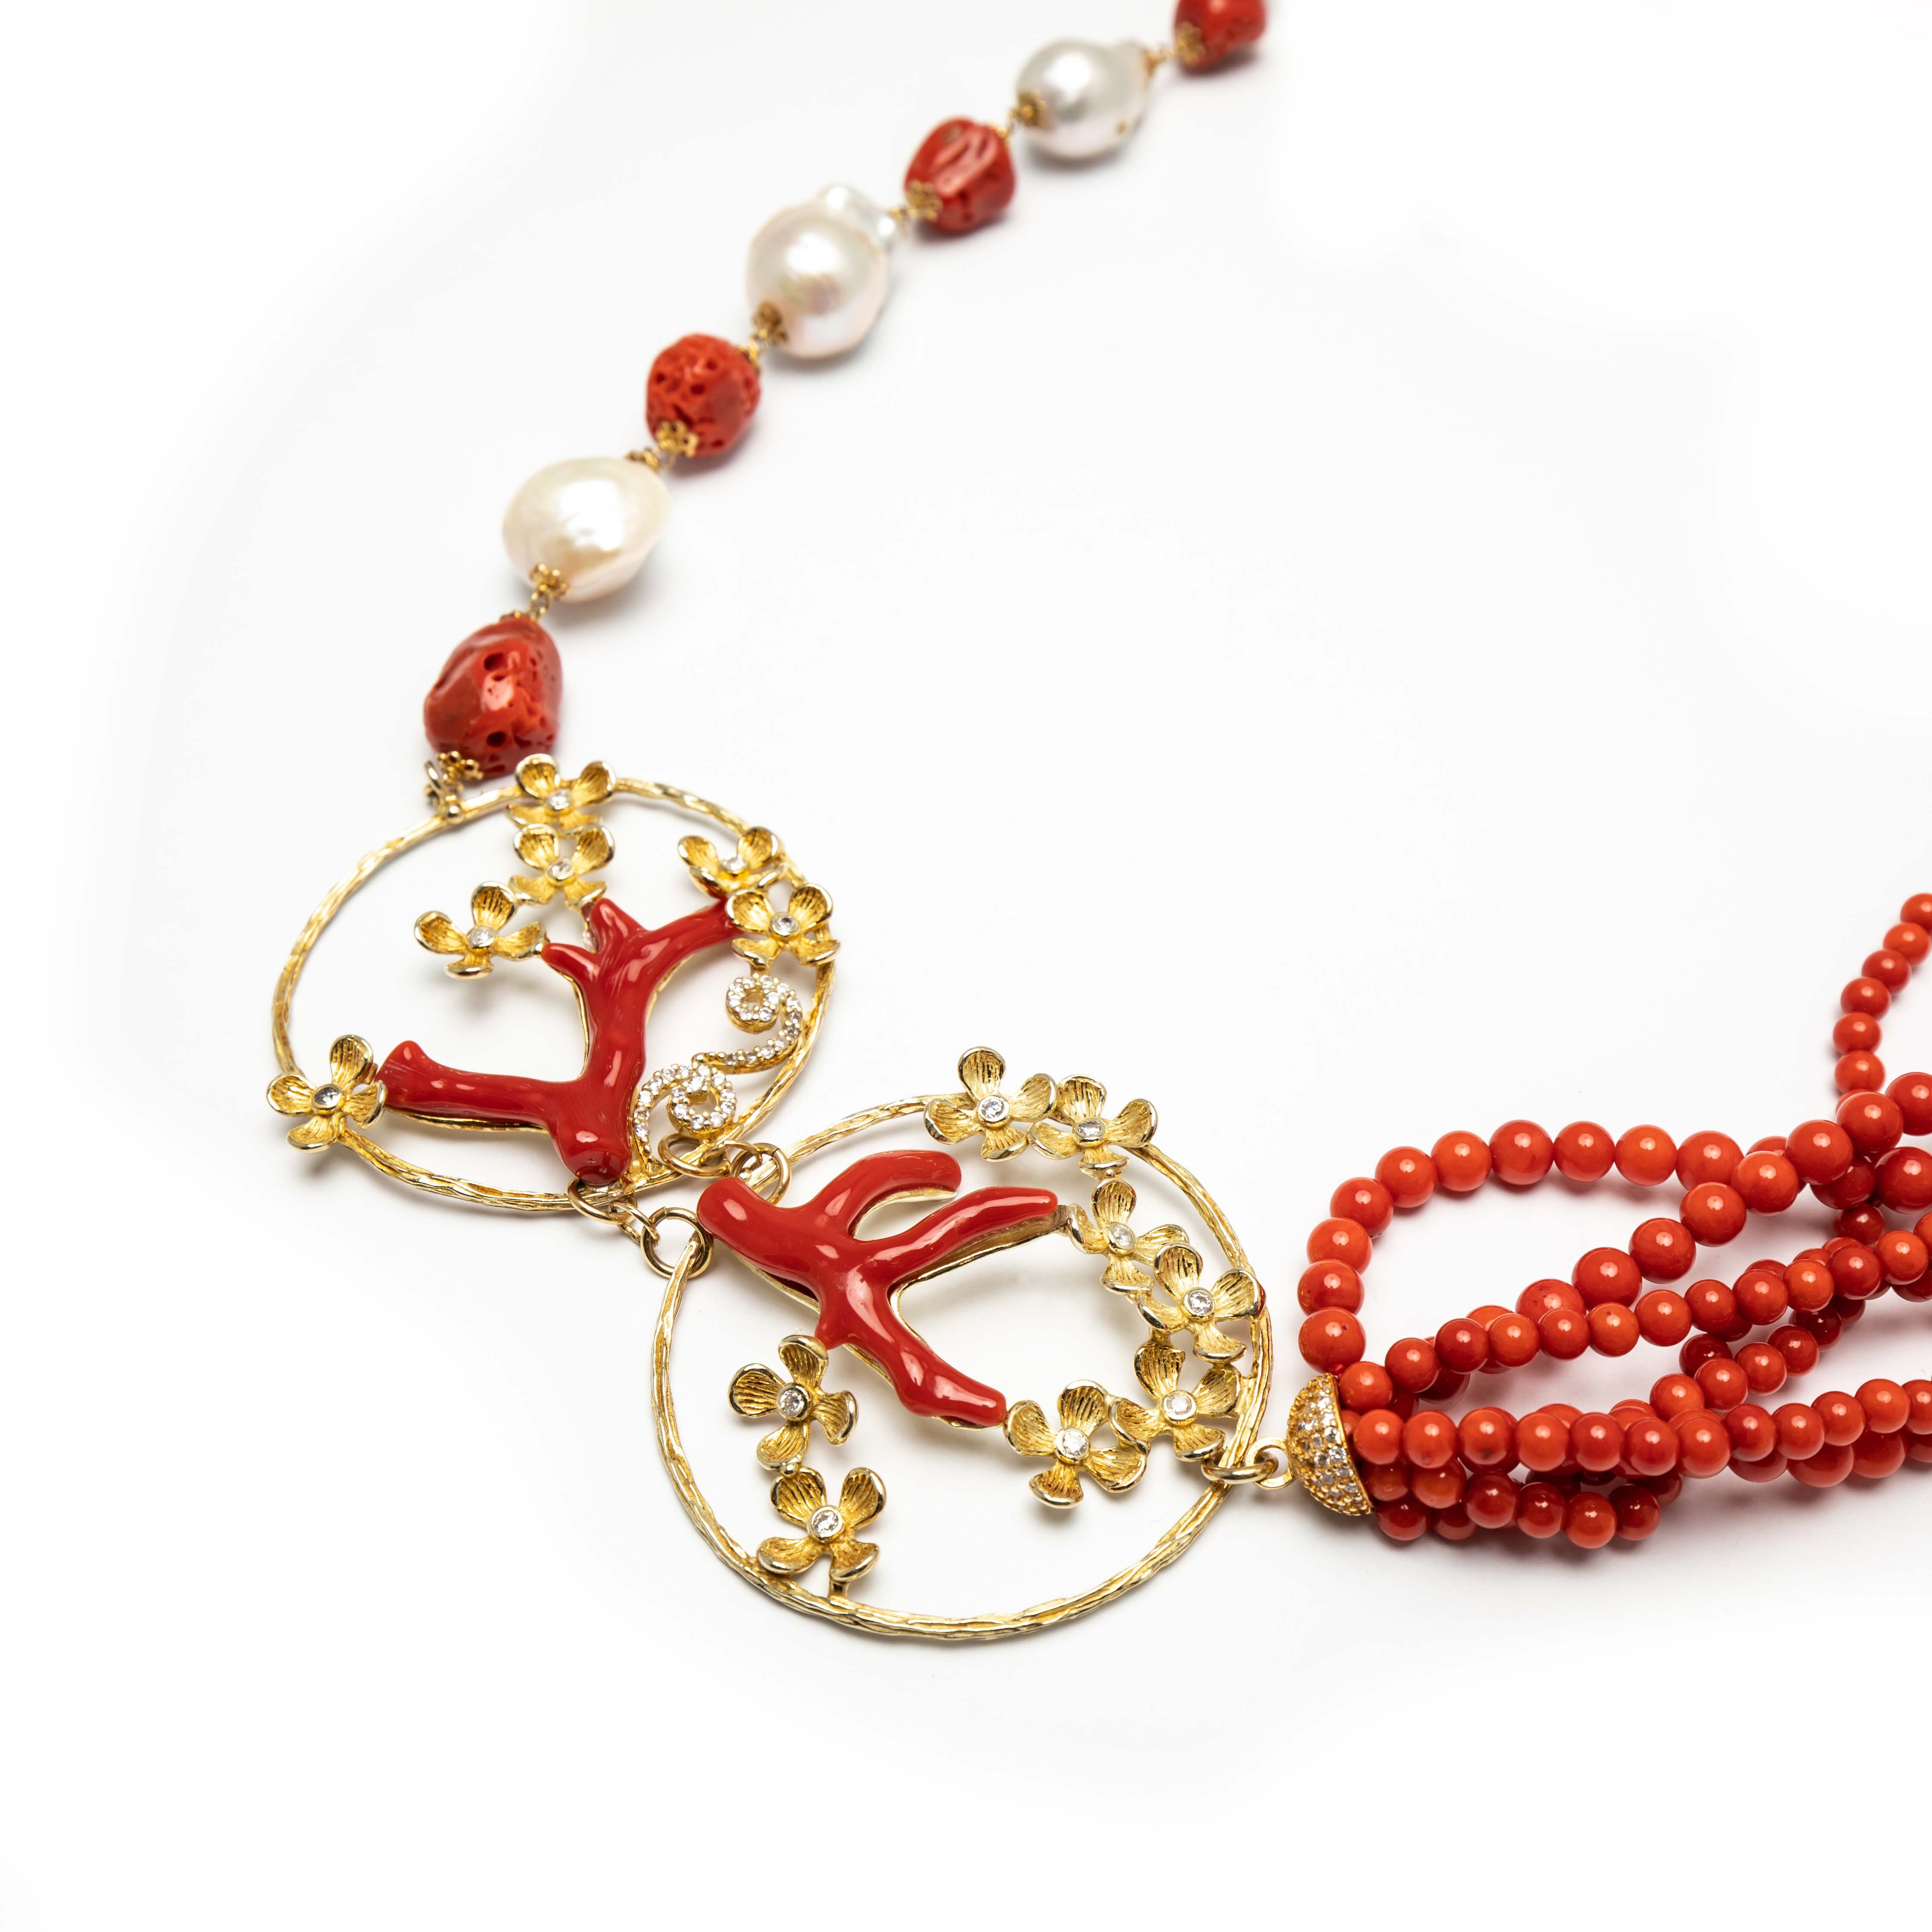 Natural Stone Necklace With Coral And Pearls